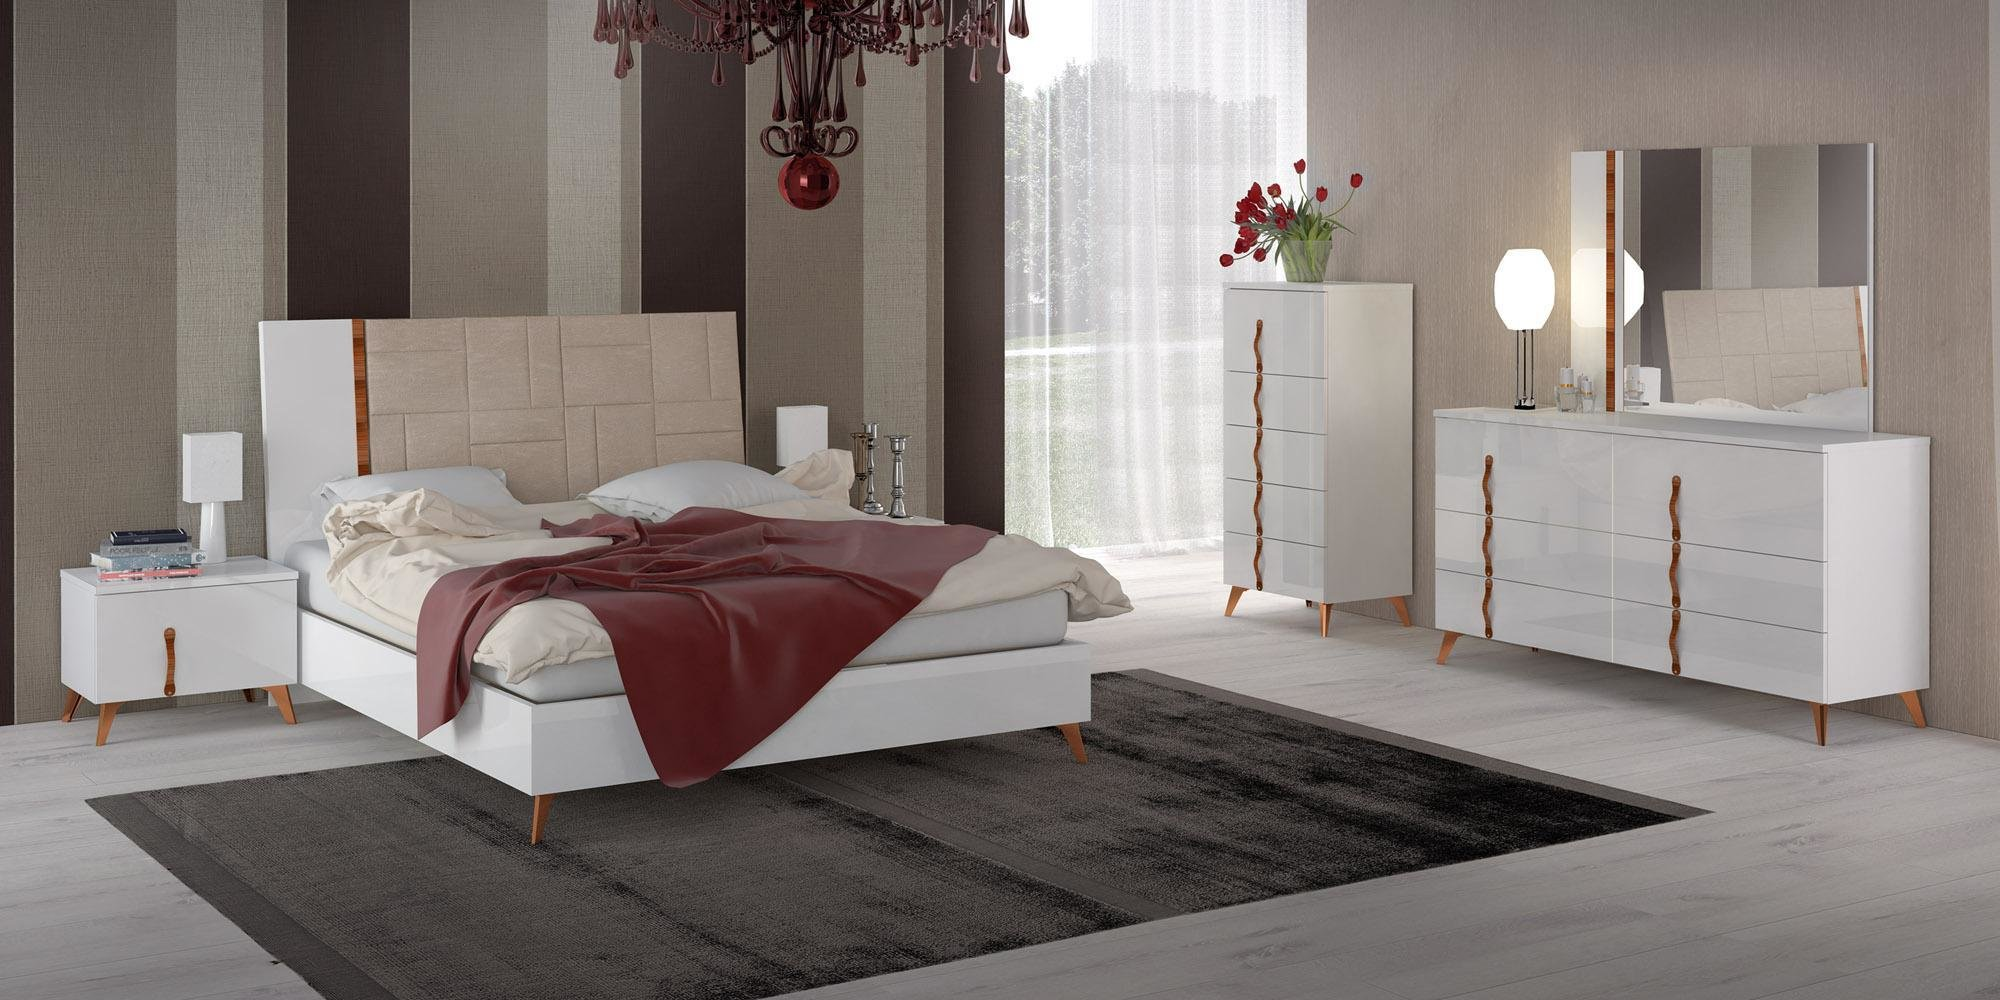 Best Made In Italy Leather Elite Modern Bedroom Sets With Extra With Pictures